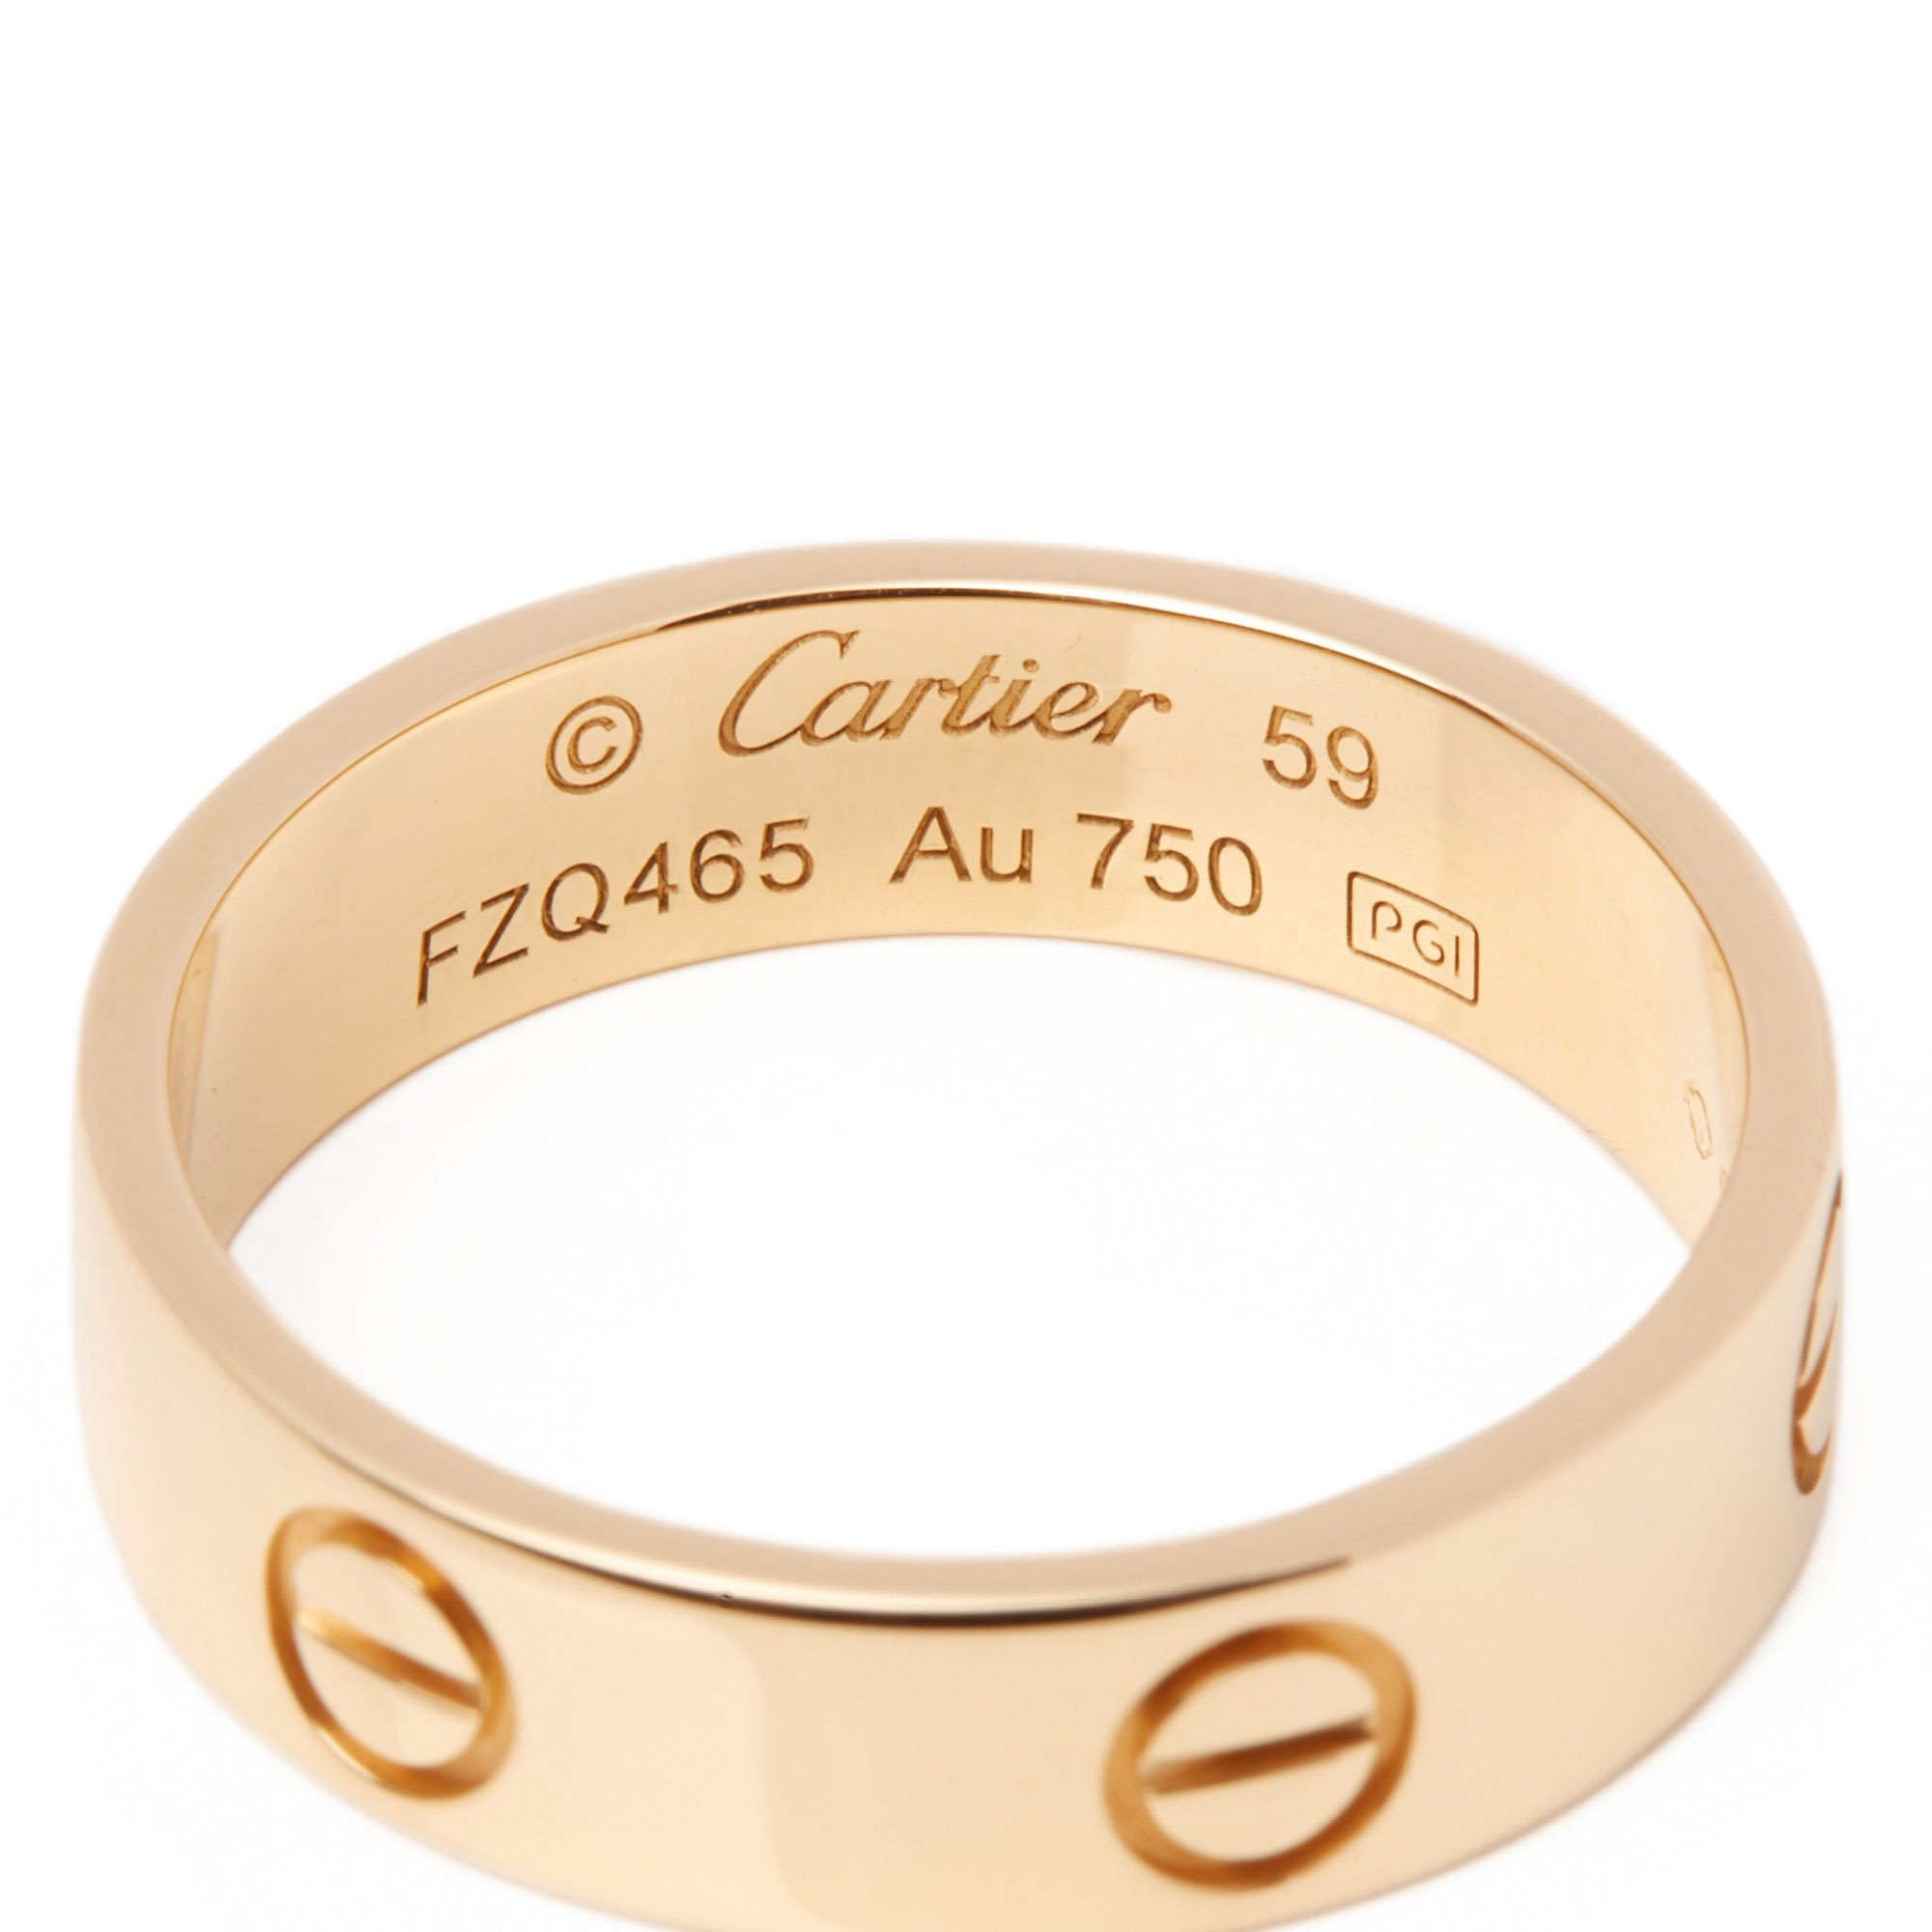 Cartier Love 18ct Yellow Gold Band Ring